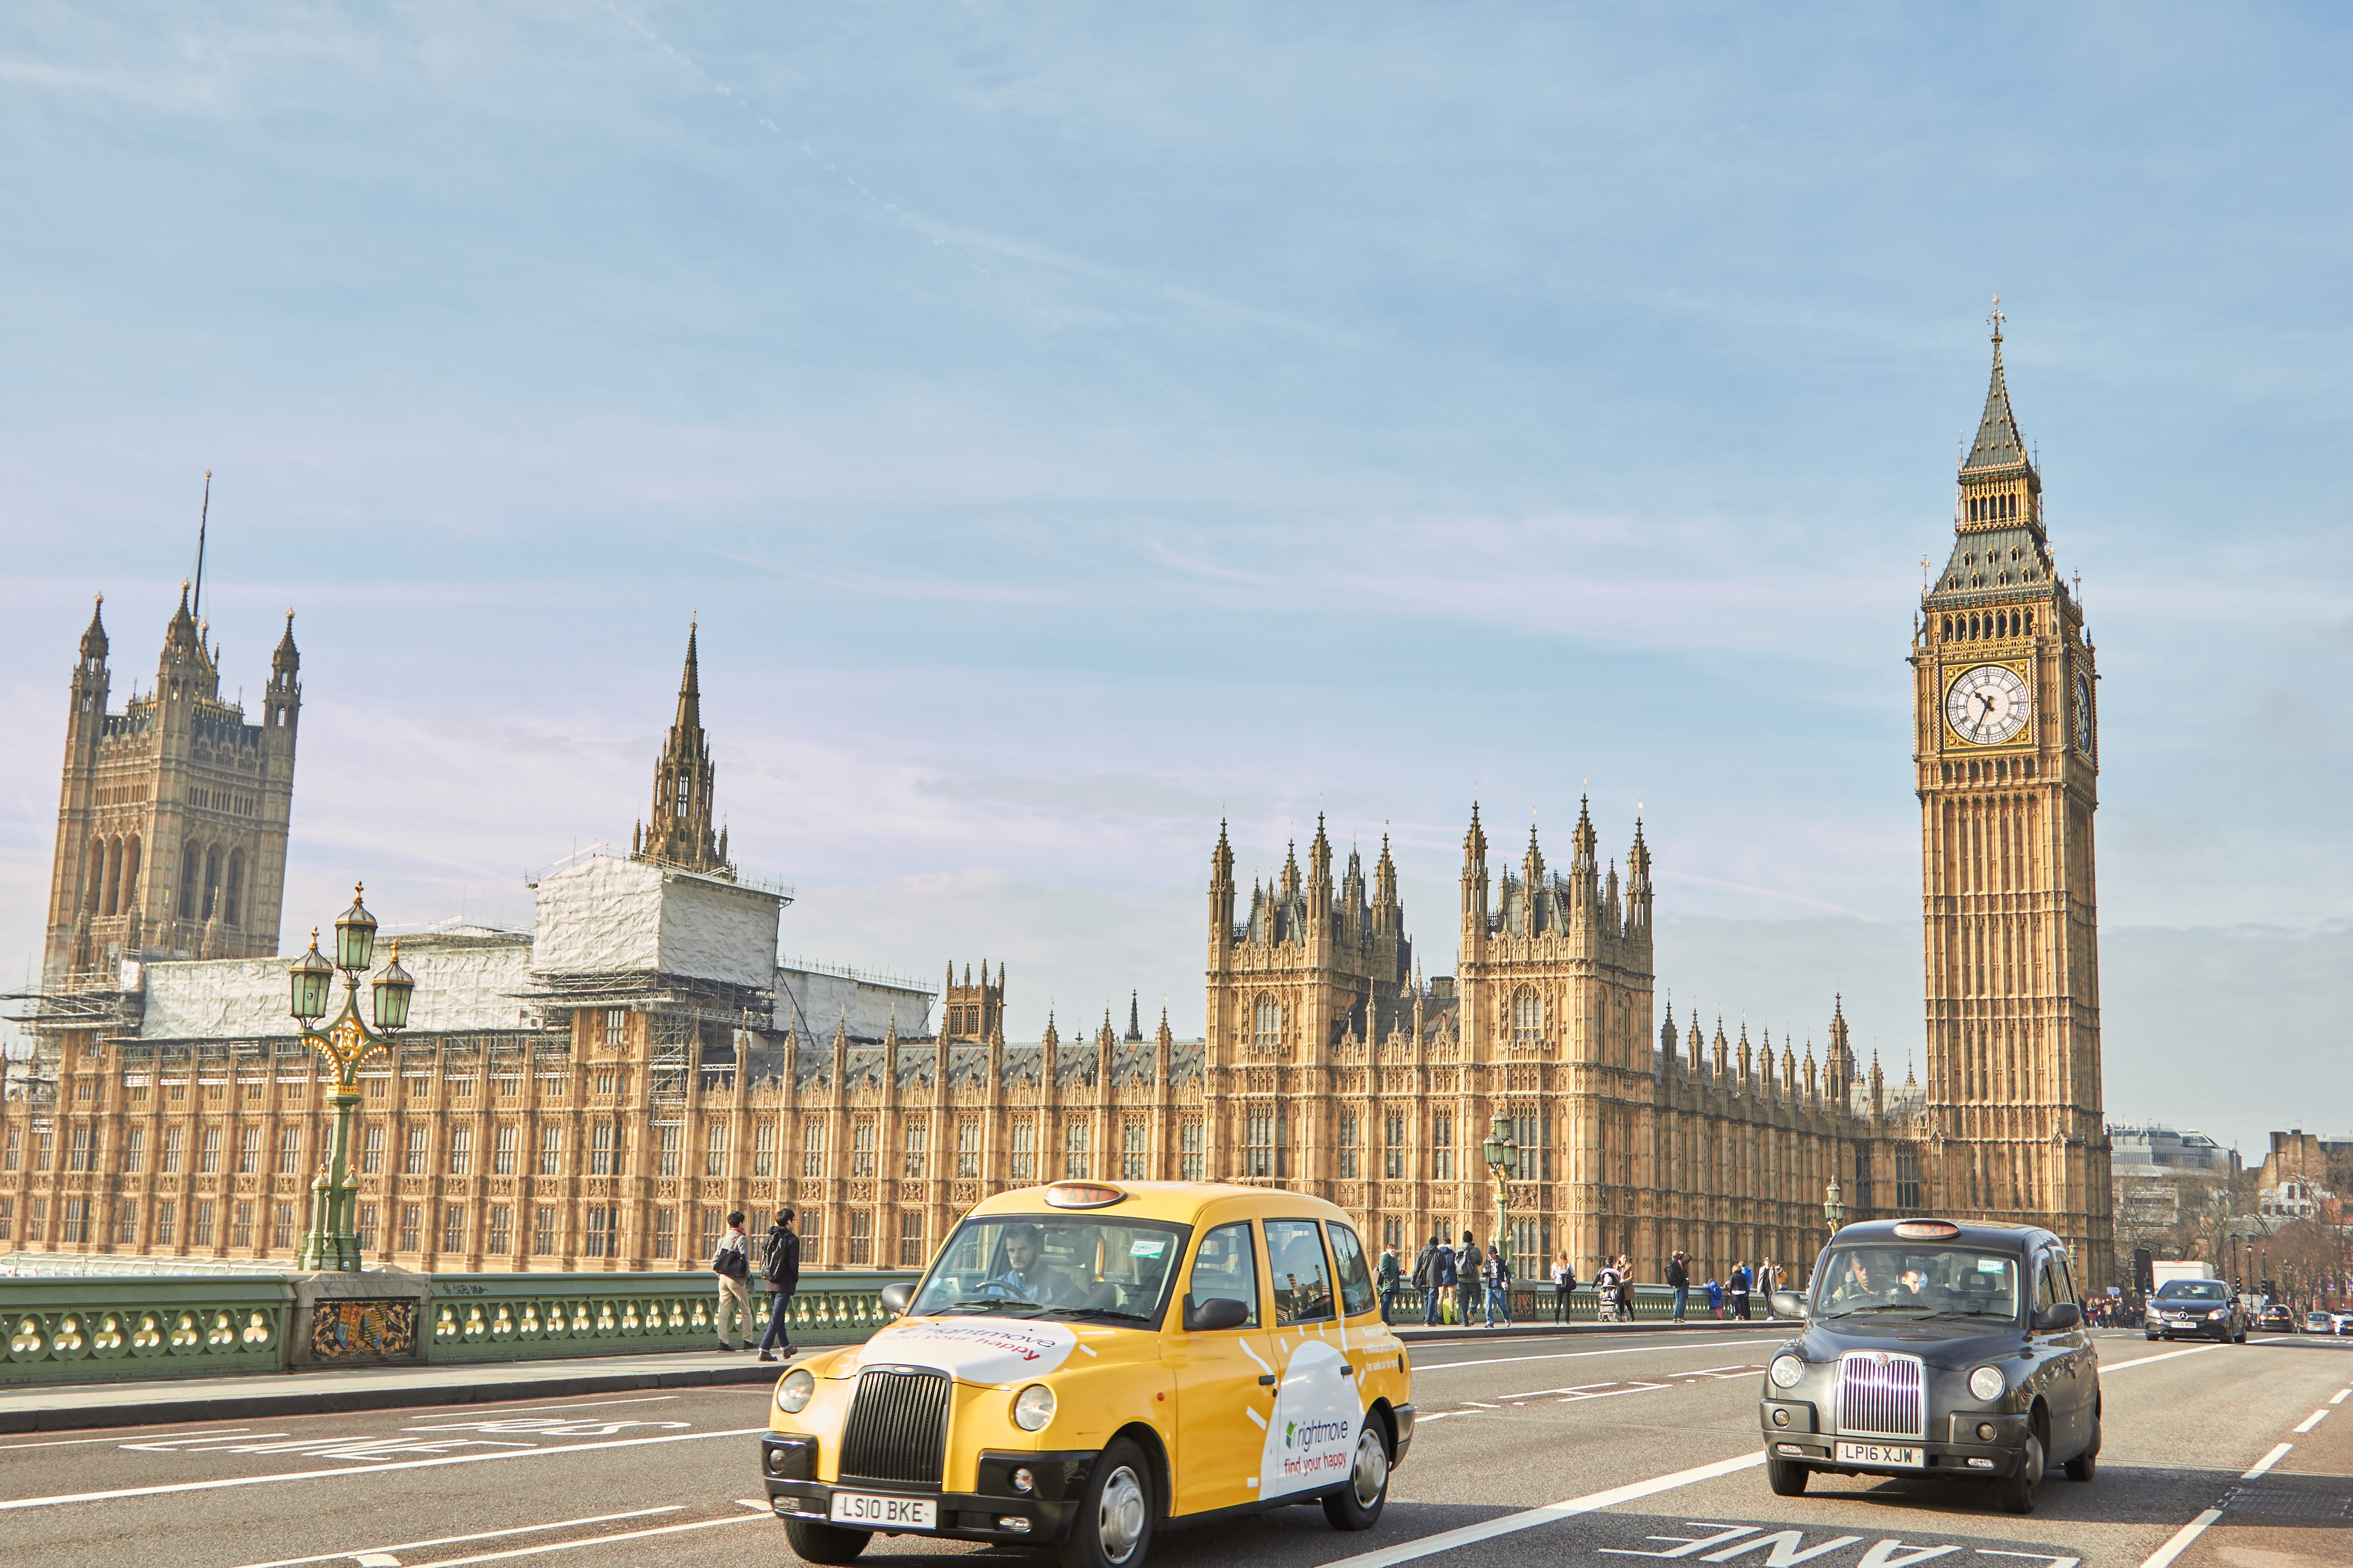 Take public transportation from the airport, Travel to Europe on a budget